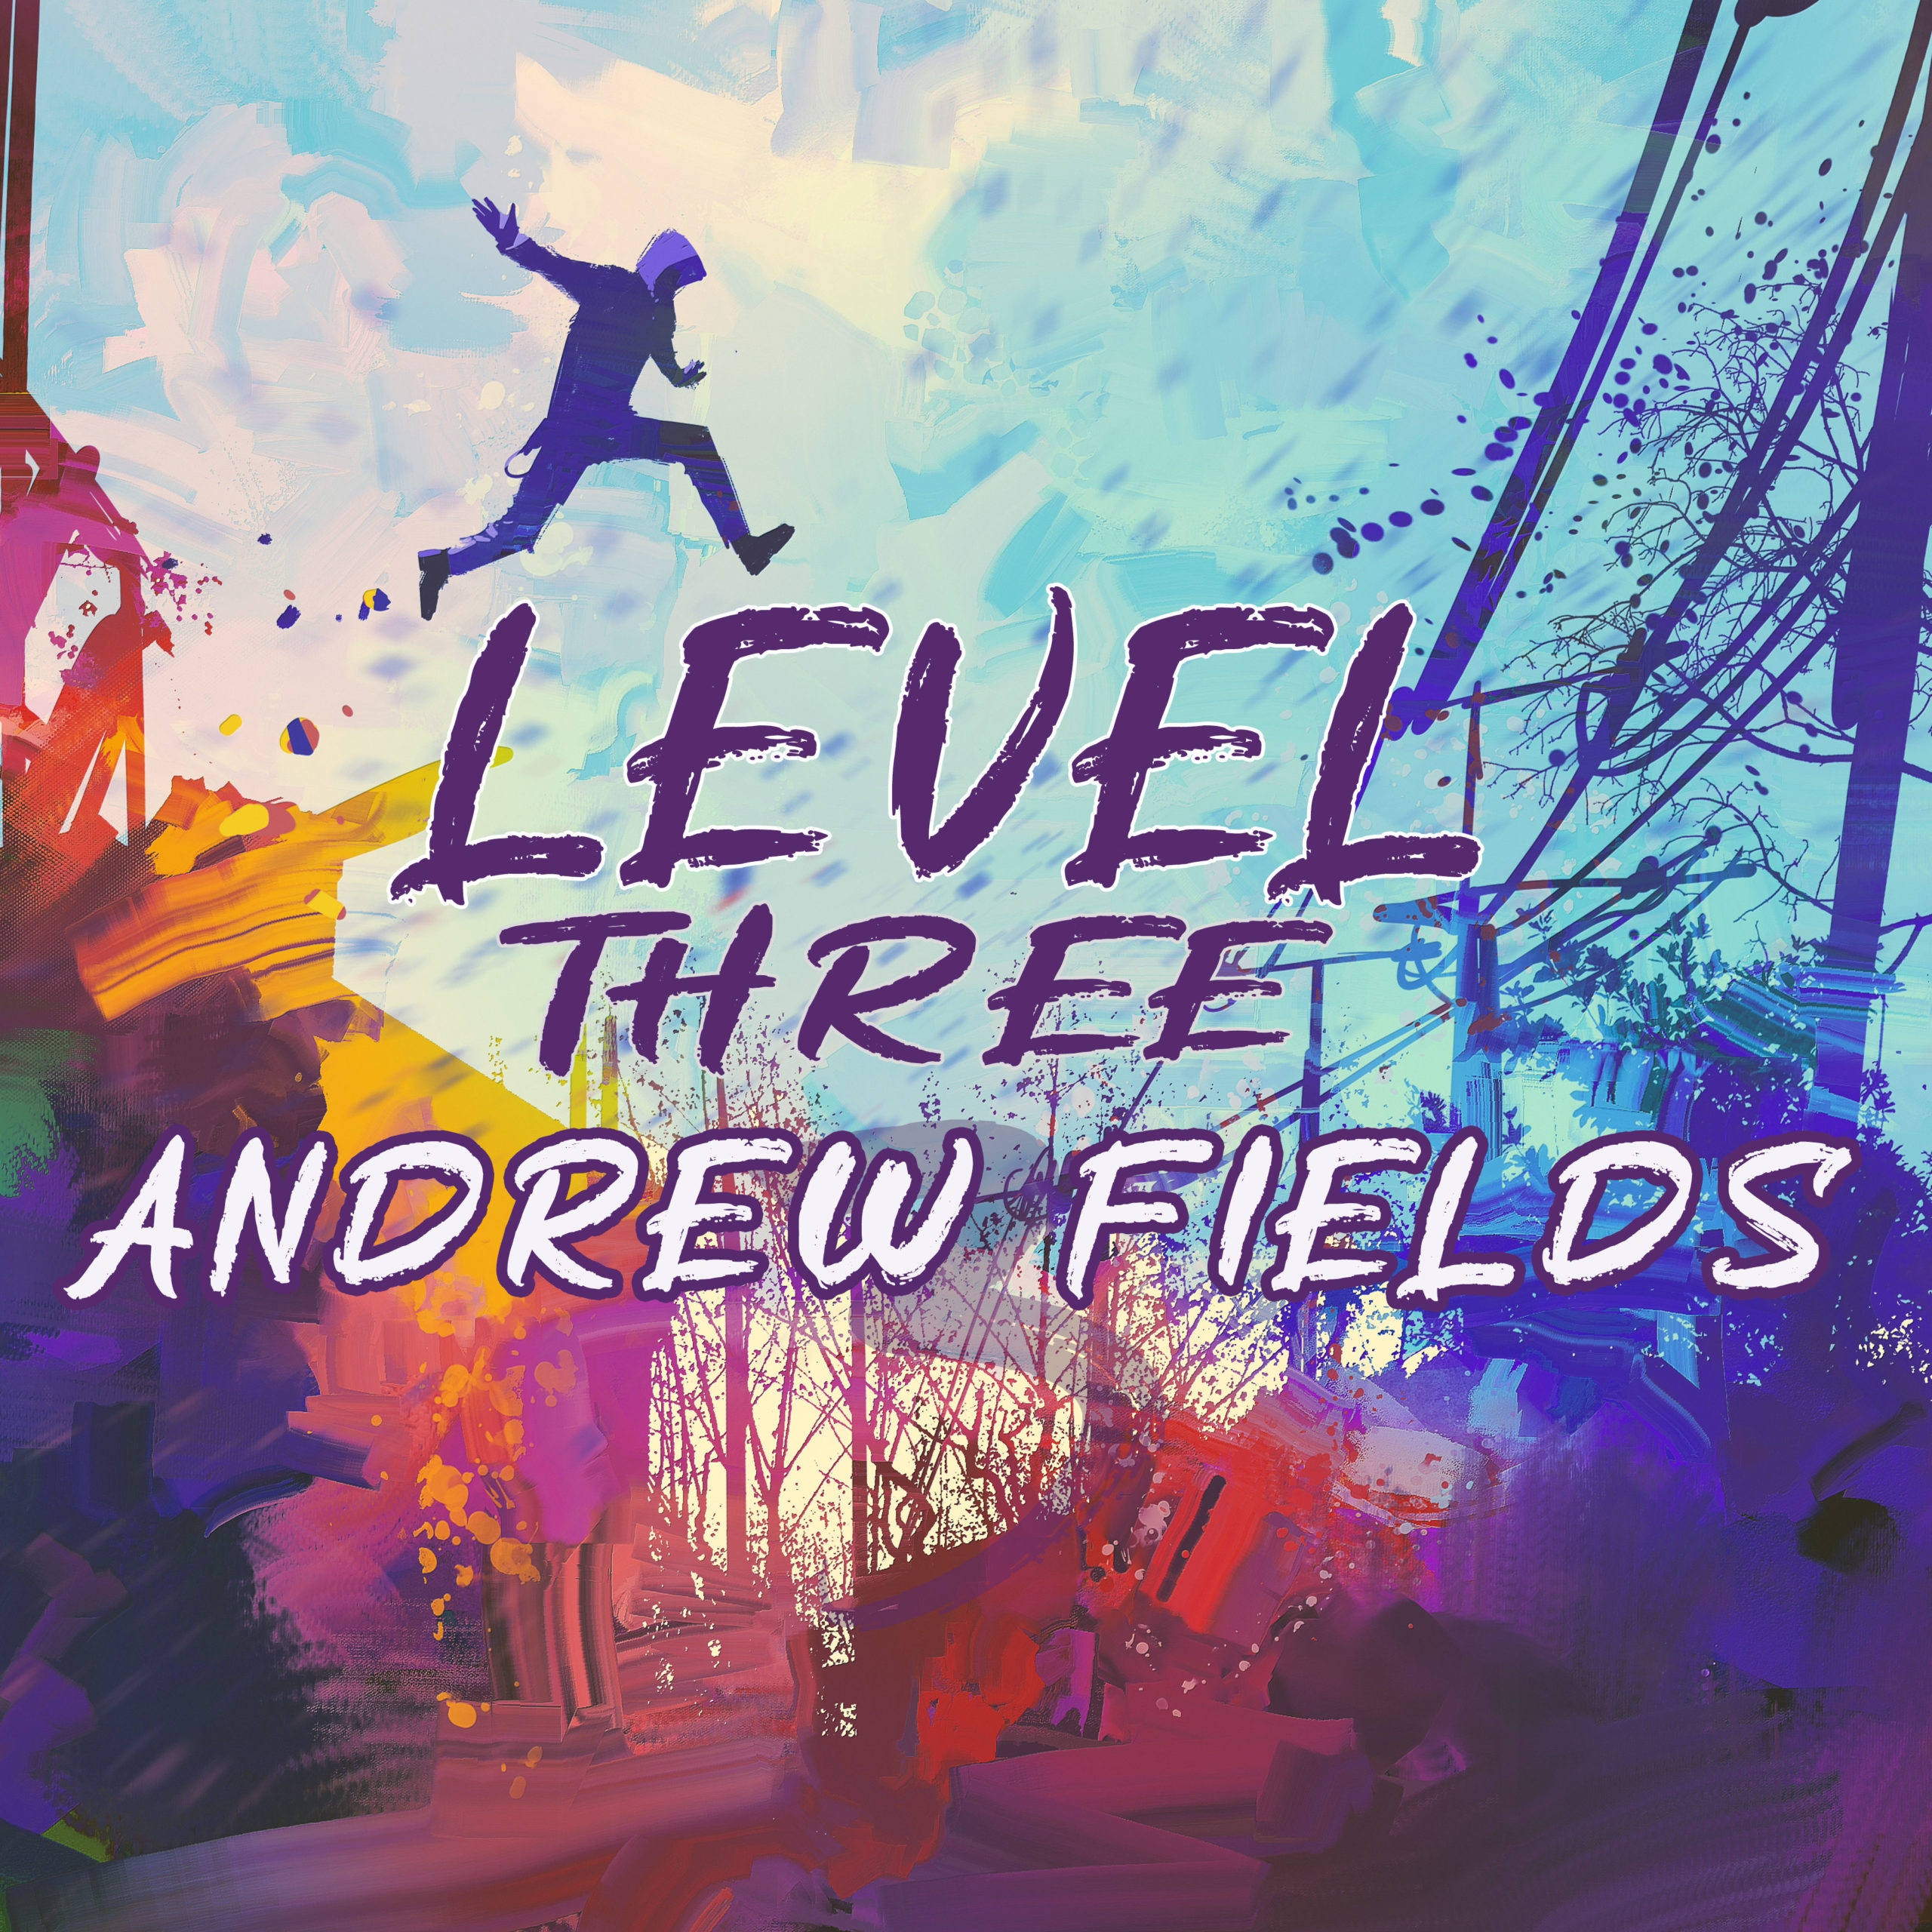 https://www.ultimate-house-records.com/wp-content/uploads/2020/07/UD016-Andrew_Fields-Level_Three-Cover_4000px_web-scaled.jpg